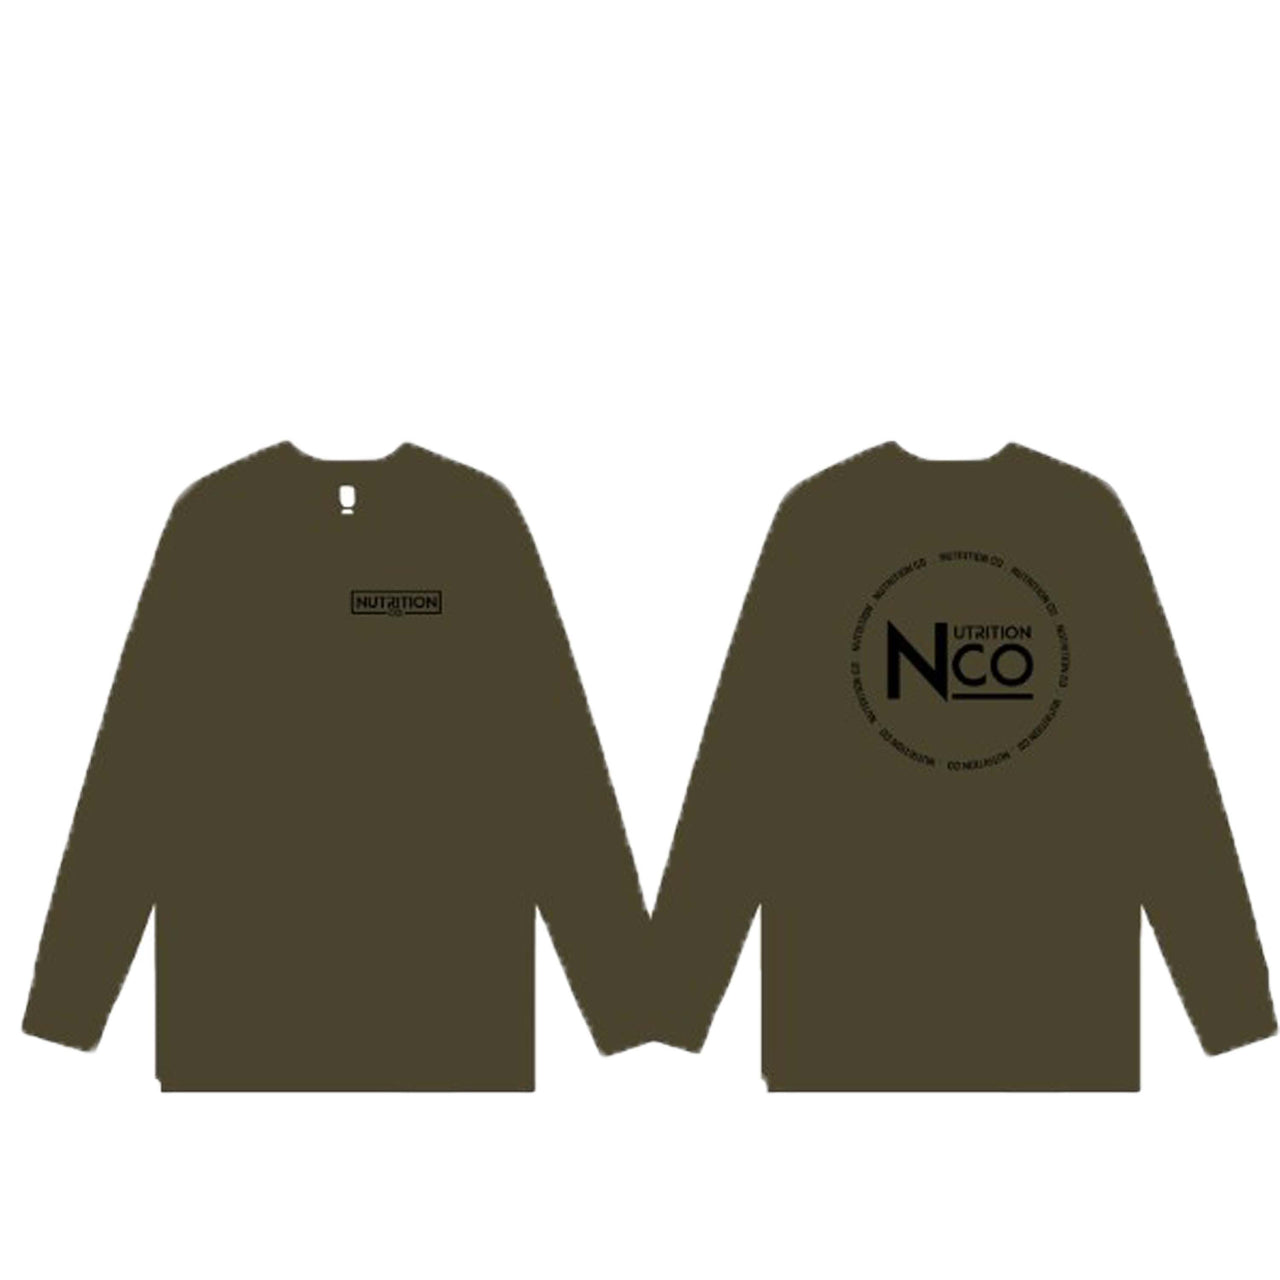 Nutrition Co Black Circular Long Sleeve Army